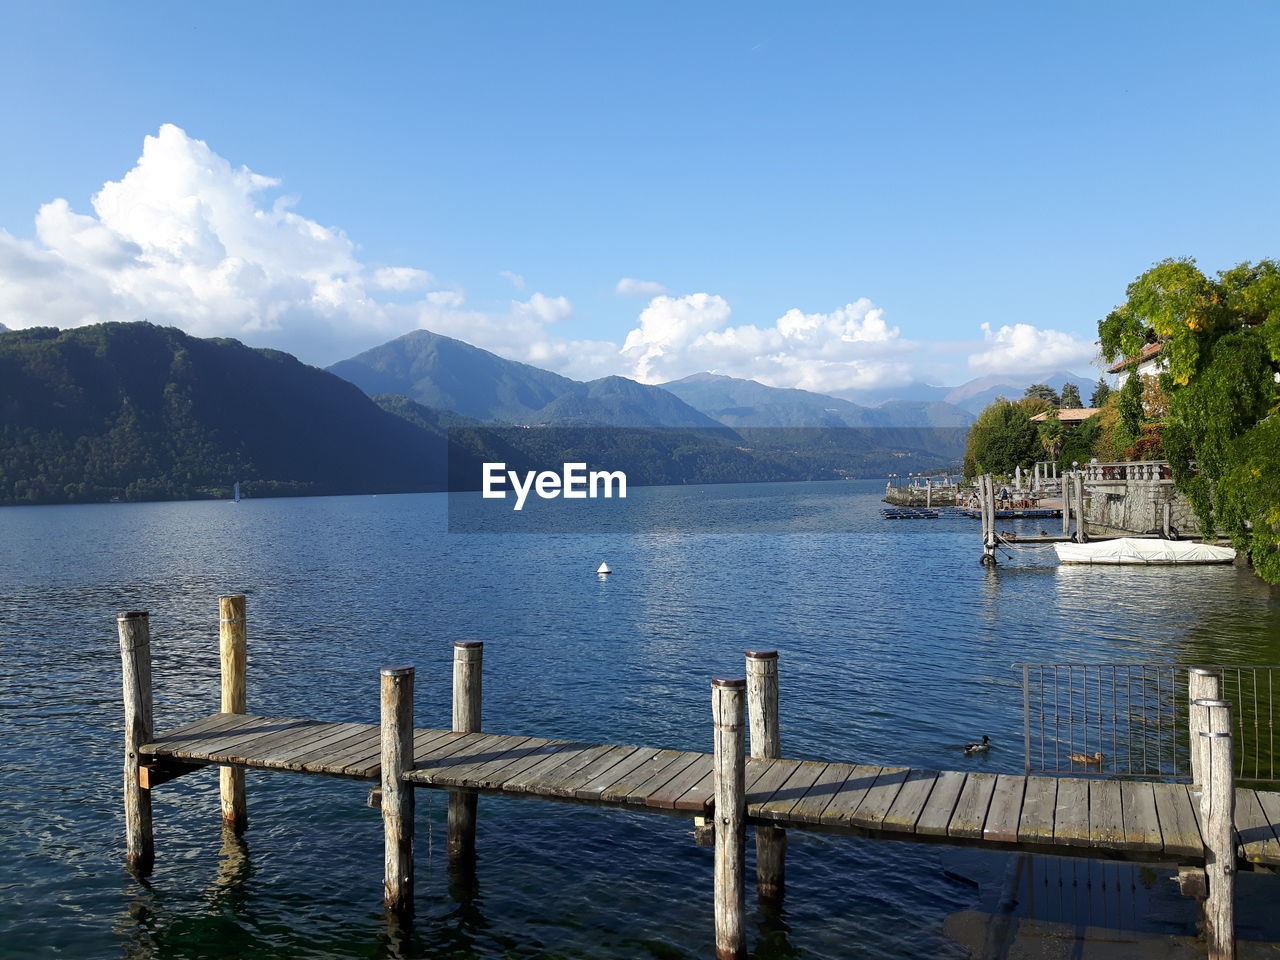 water, mountain, sky, nautical vessel, scenics - nature, beauty in nature, nature, tranquil scene, transportation, tranquility, no people, lake, cloud - sky, mode of transportation, day, idyllic, mountain range, outdoors, wooden post, bay